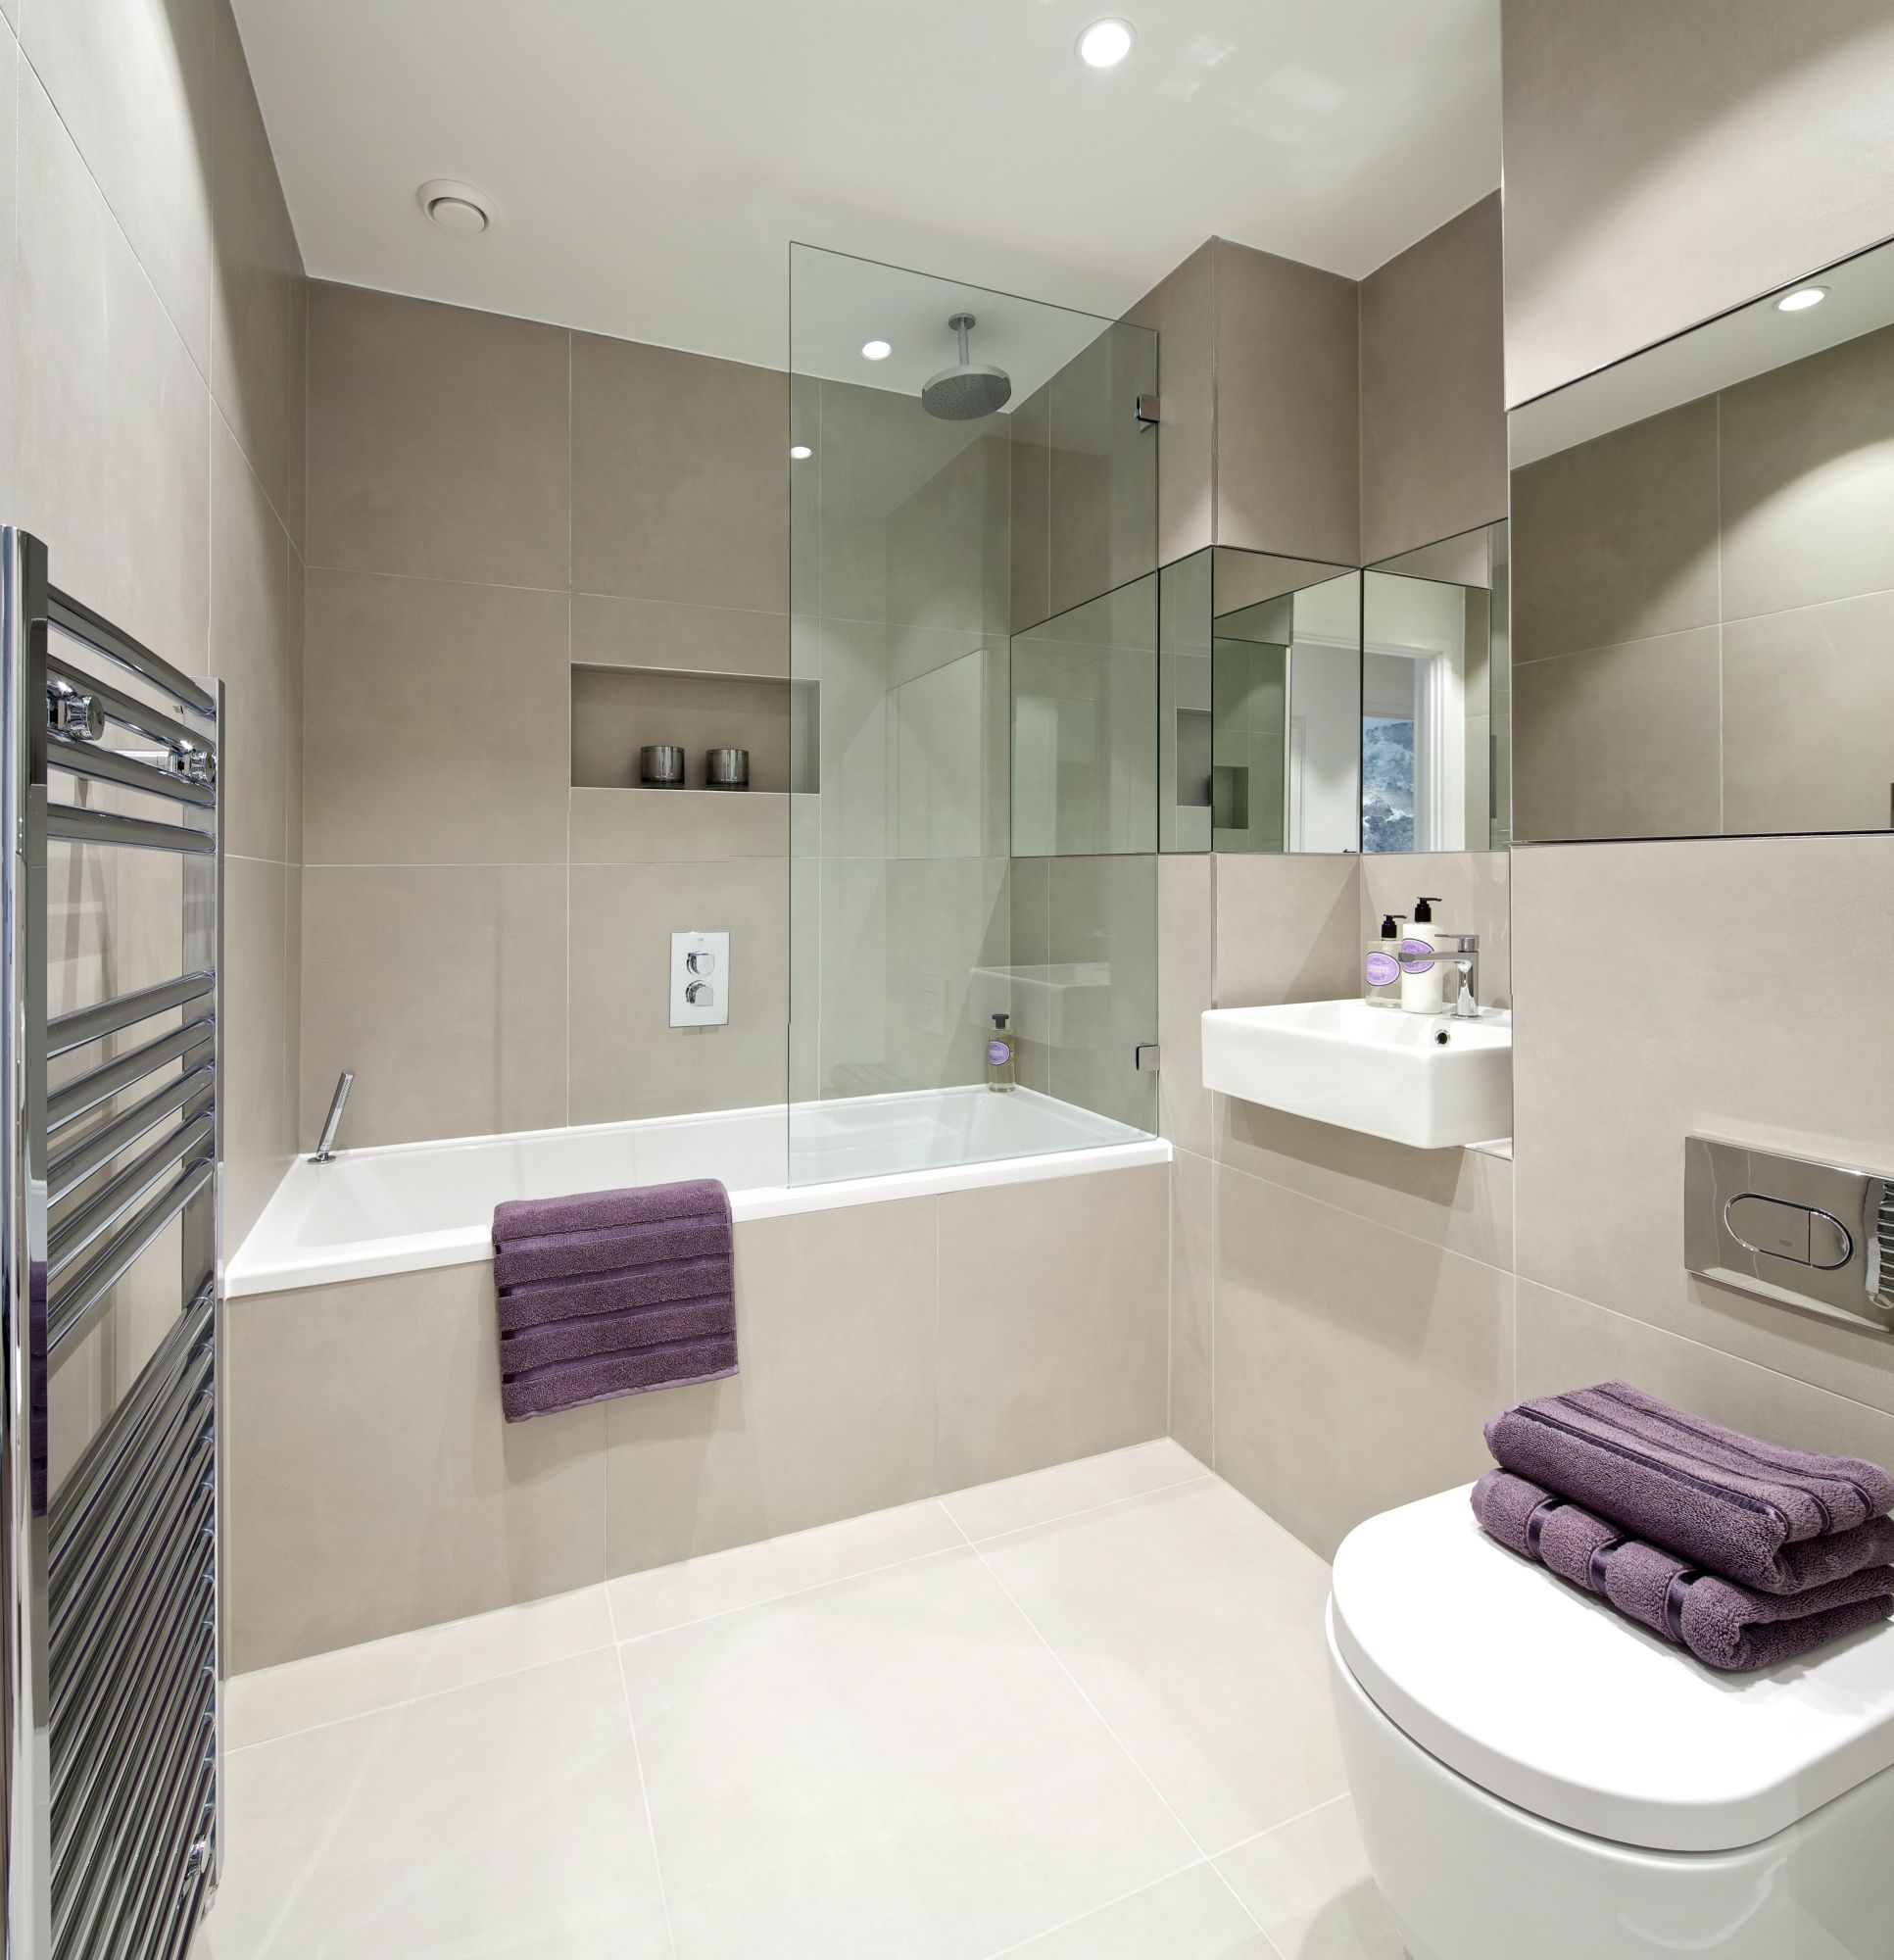 Stunning home interiors bathroom another stunning show home design by suna interior design Small bathroom design inspiration